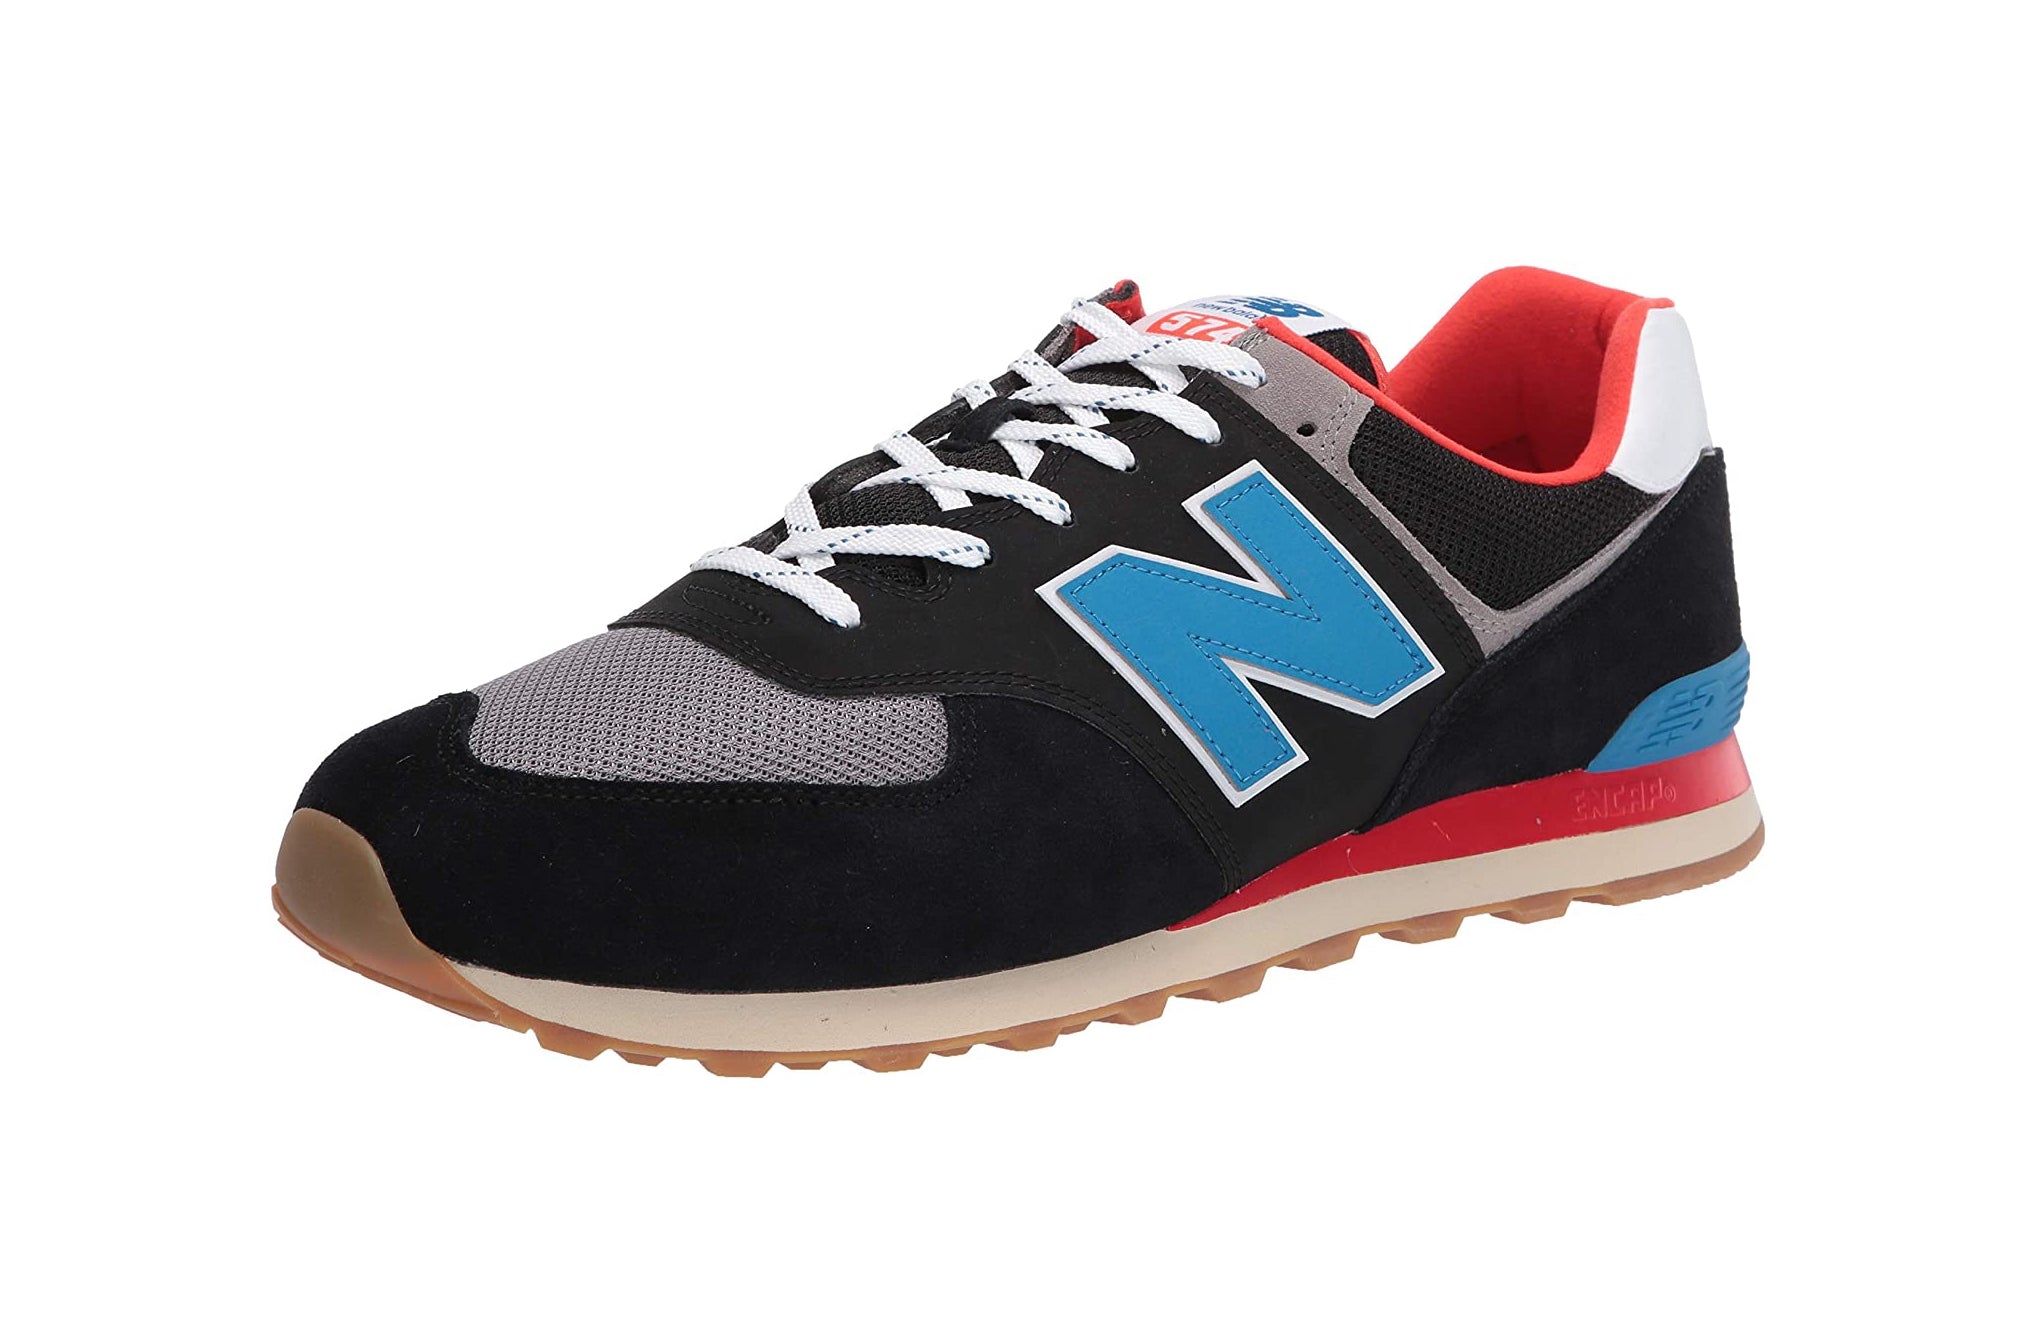 New Balance 574 Black/Gum Men's Shoes